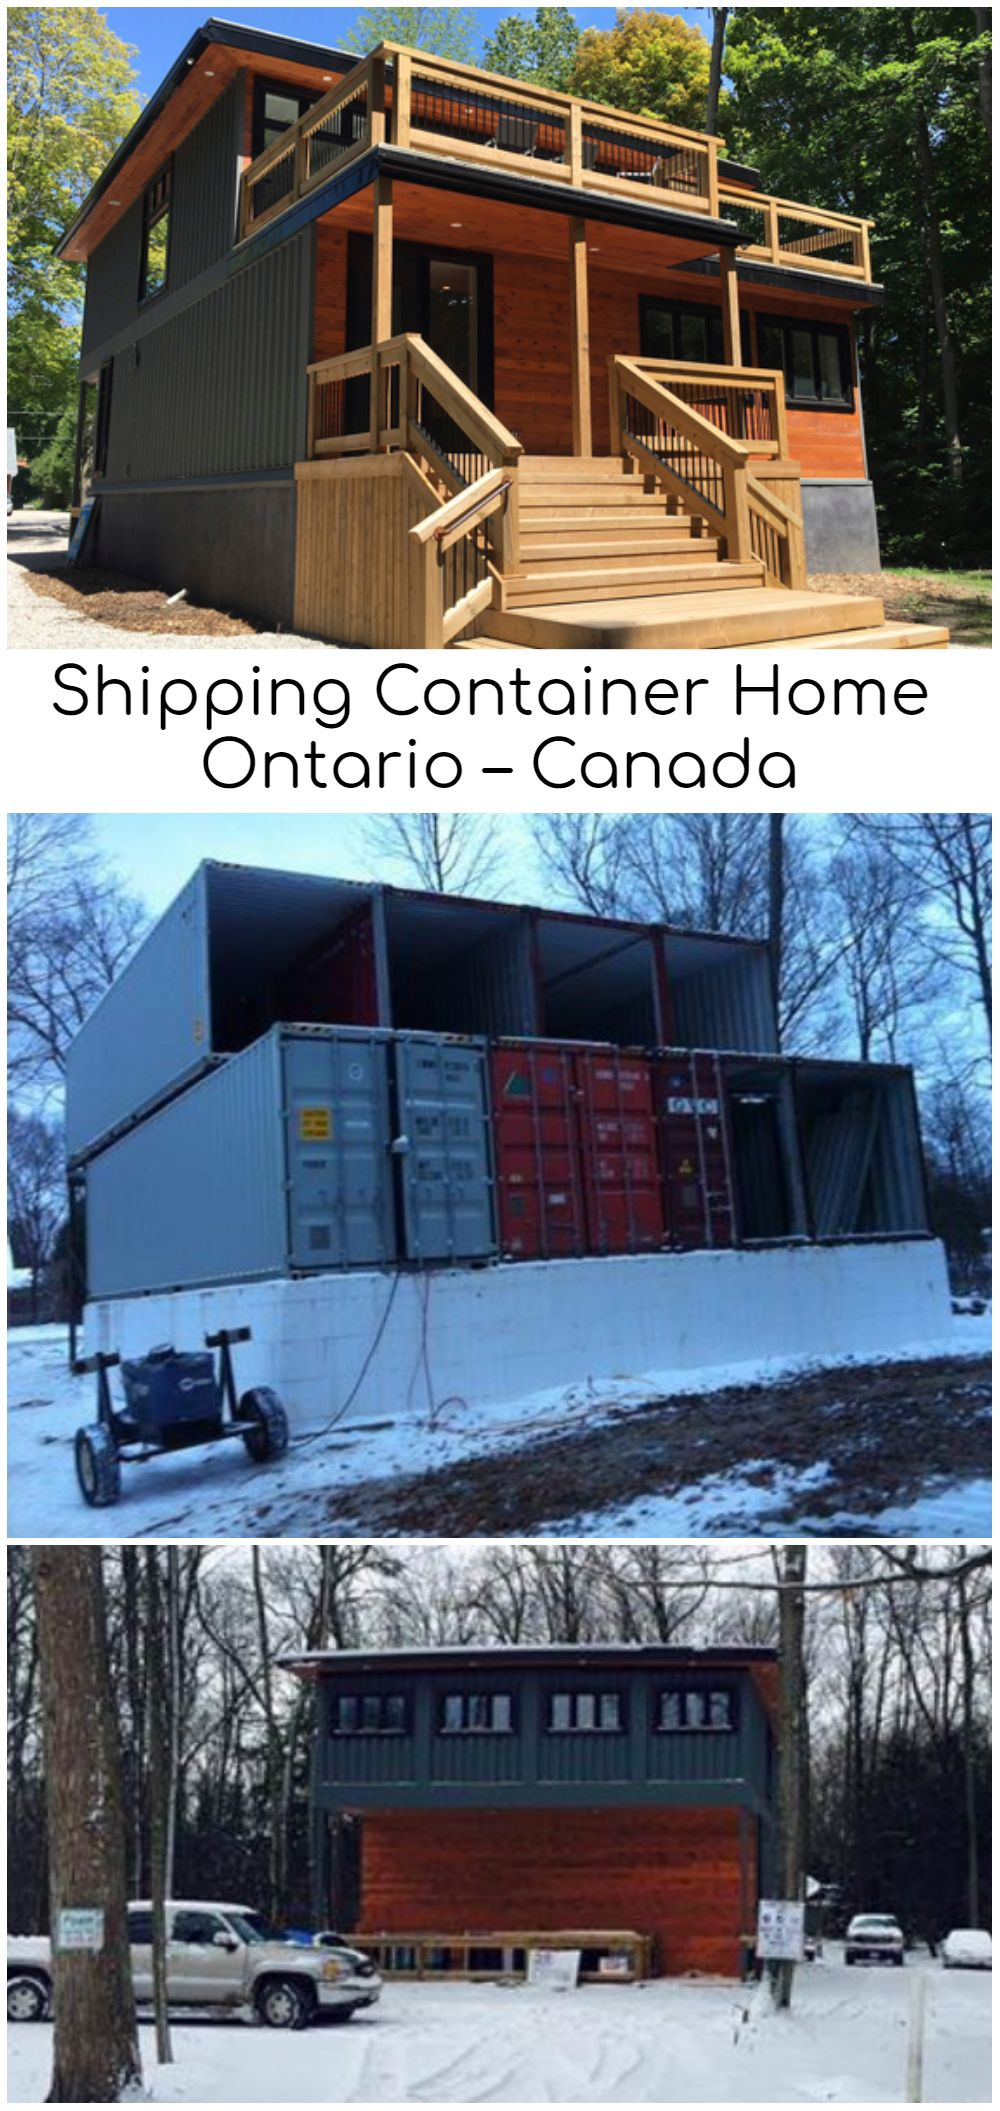 Shipping Container Home Ontario – Canada